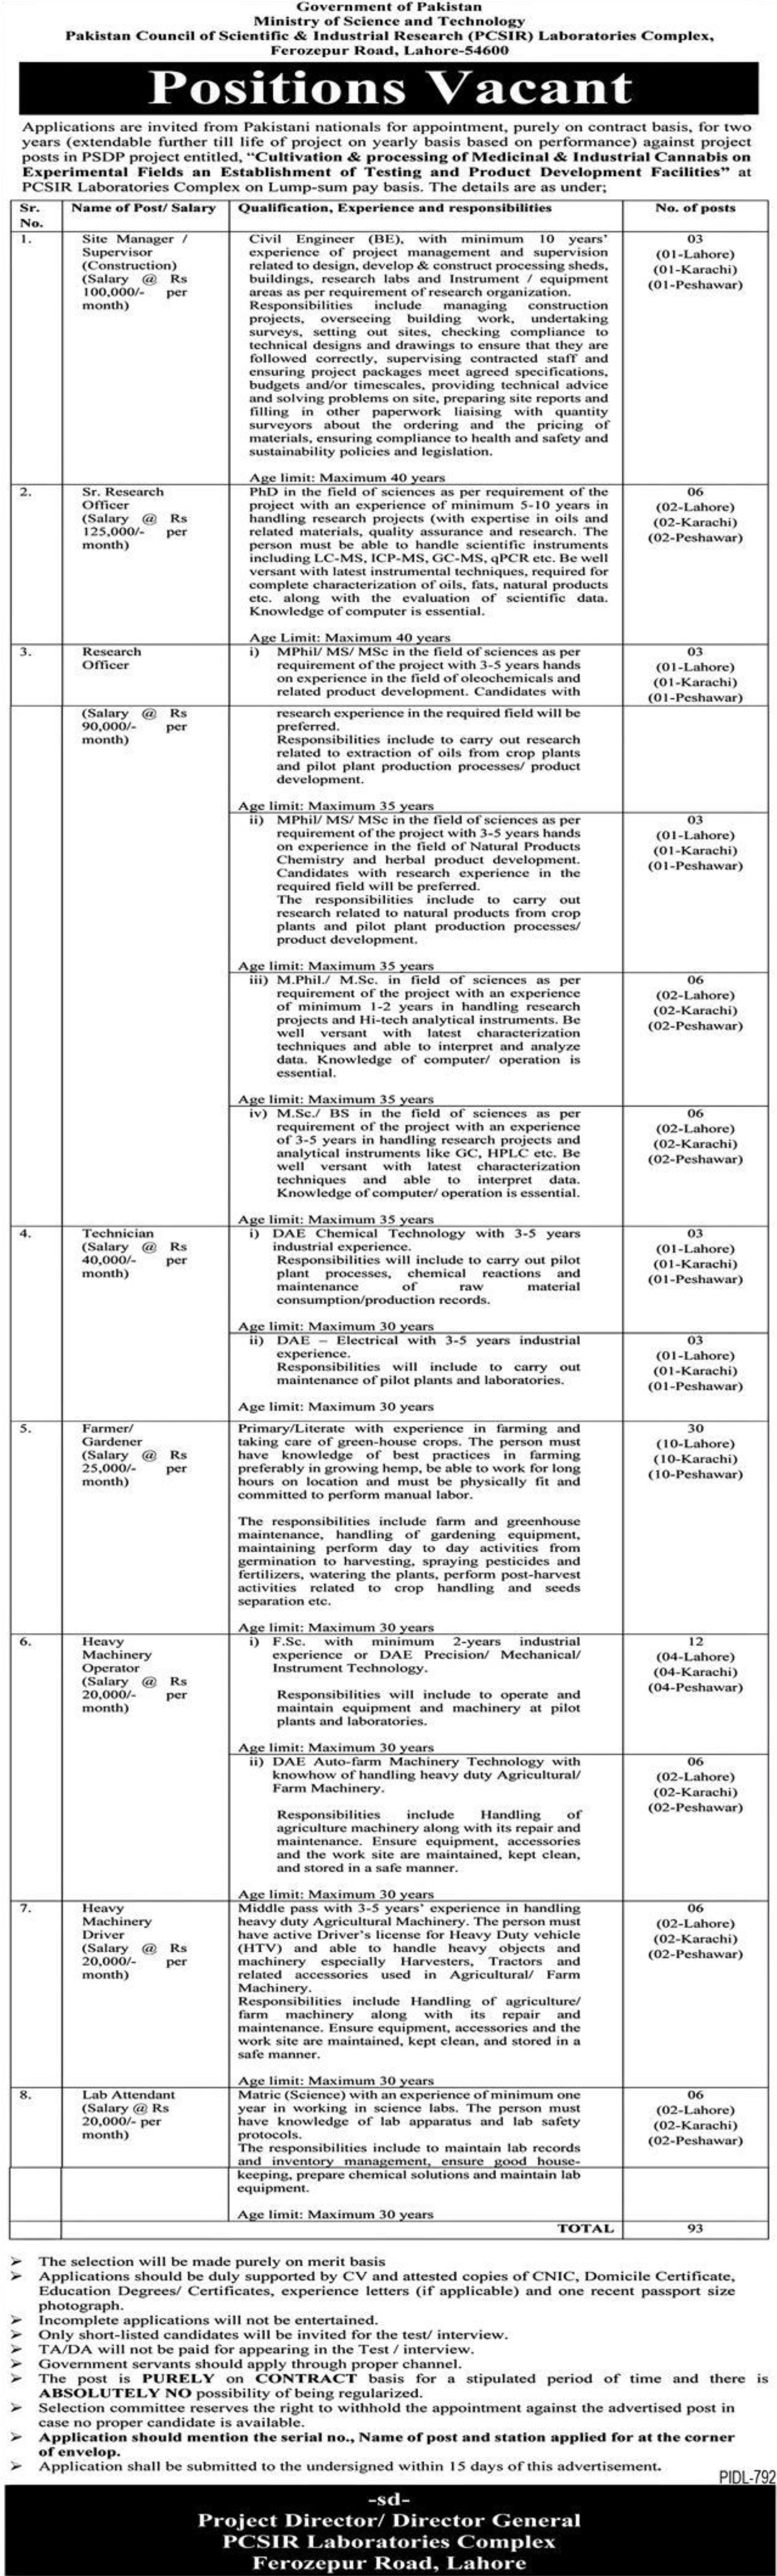 Ministry of Science and Technology Vacancies 2021 – Latest Jobs 3